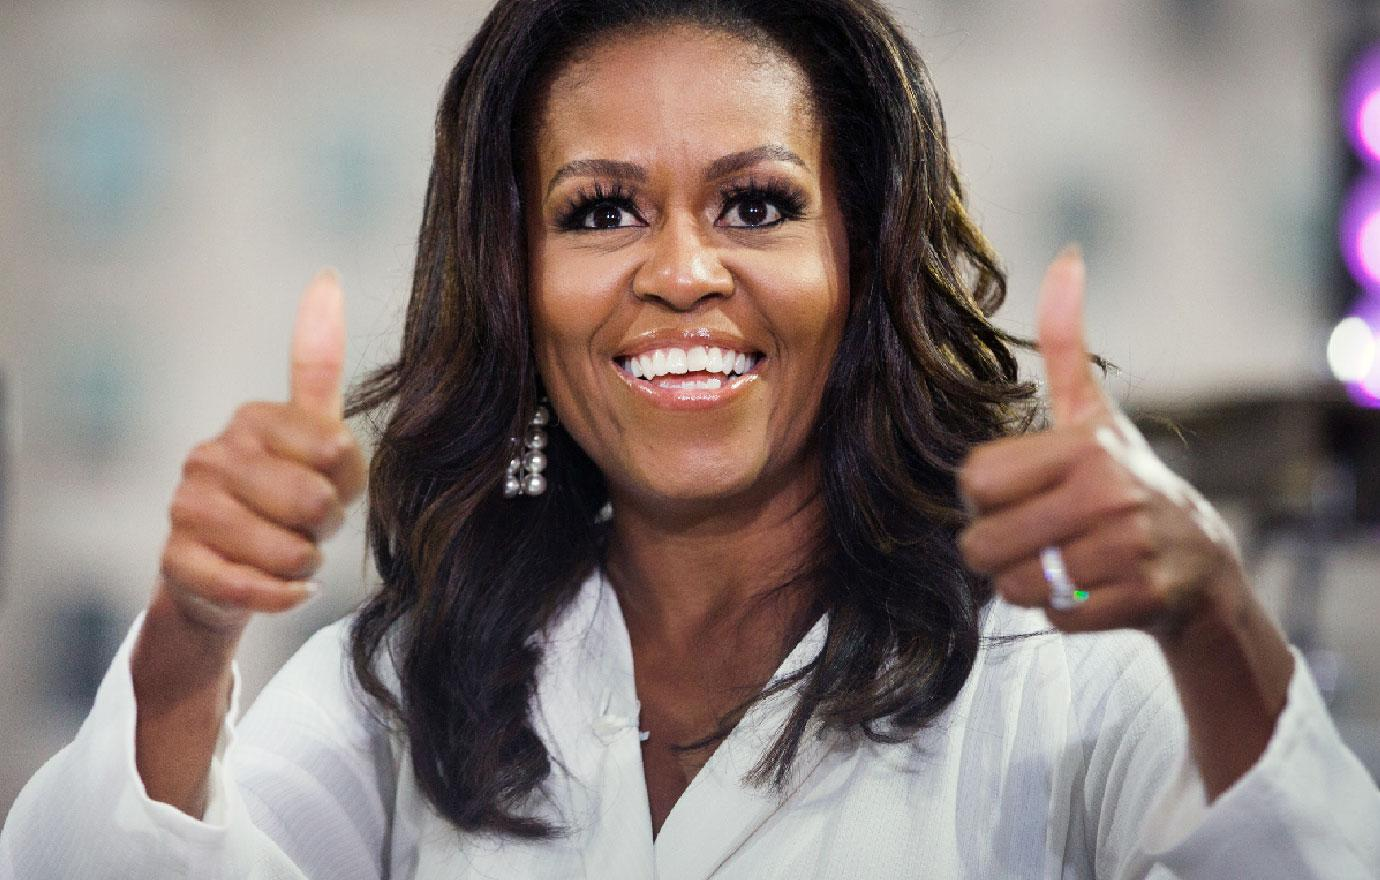 Michelle Obama Says She Was Body Shamed Felt Insecure About Being Poor